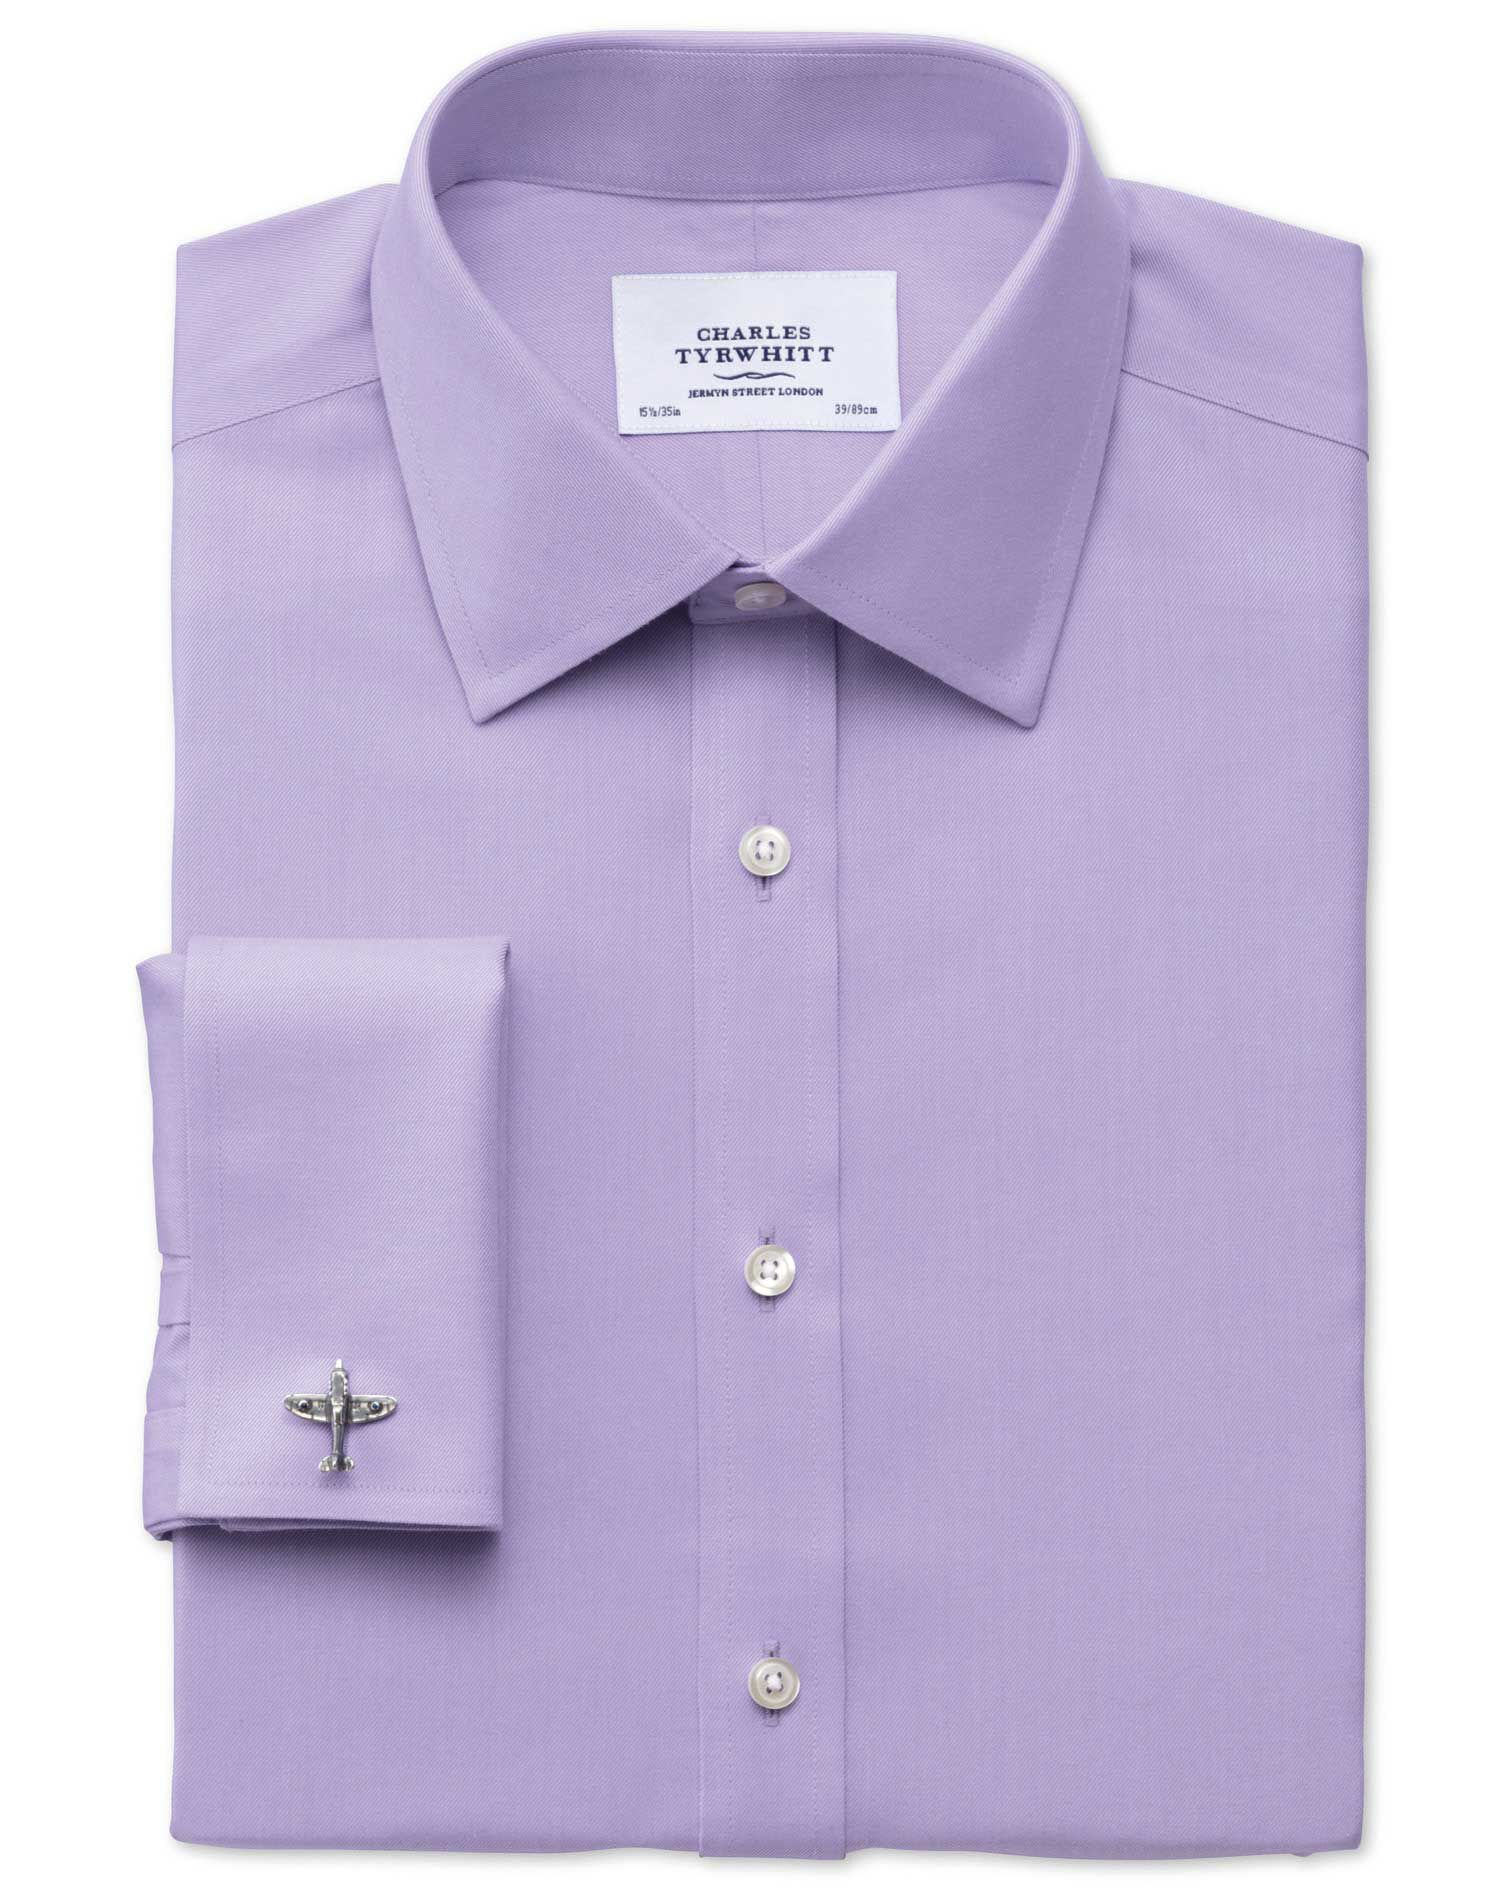 Extra Slim Fit Non-Iron Twill Lilac Cotton Formal Shirt Double Cuff Size 16/33 by Charles Tyrwhitt